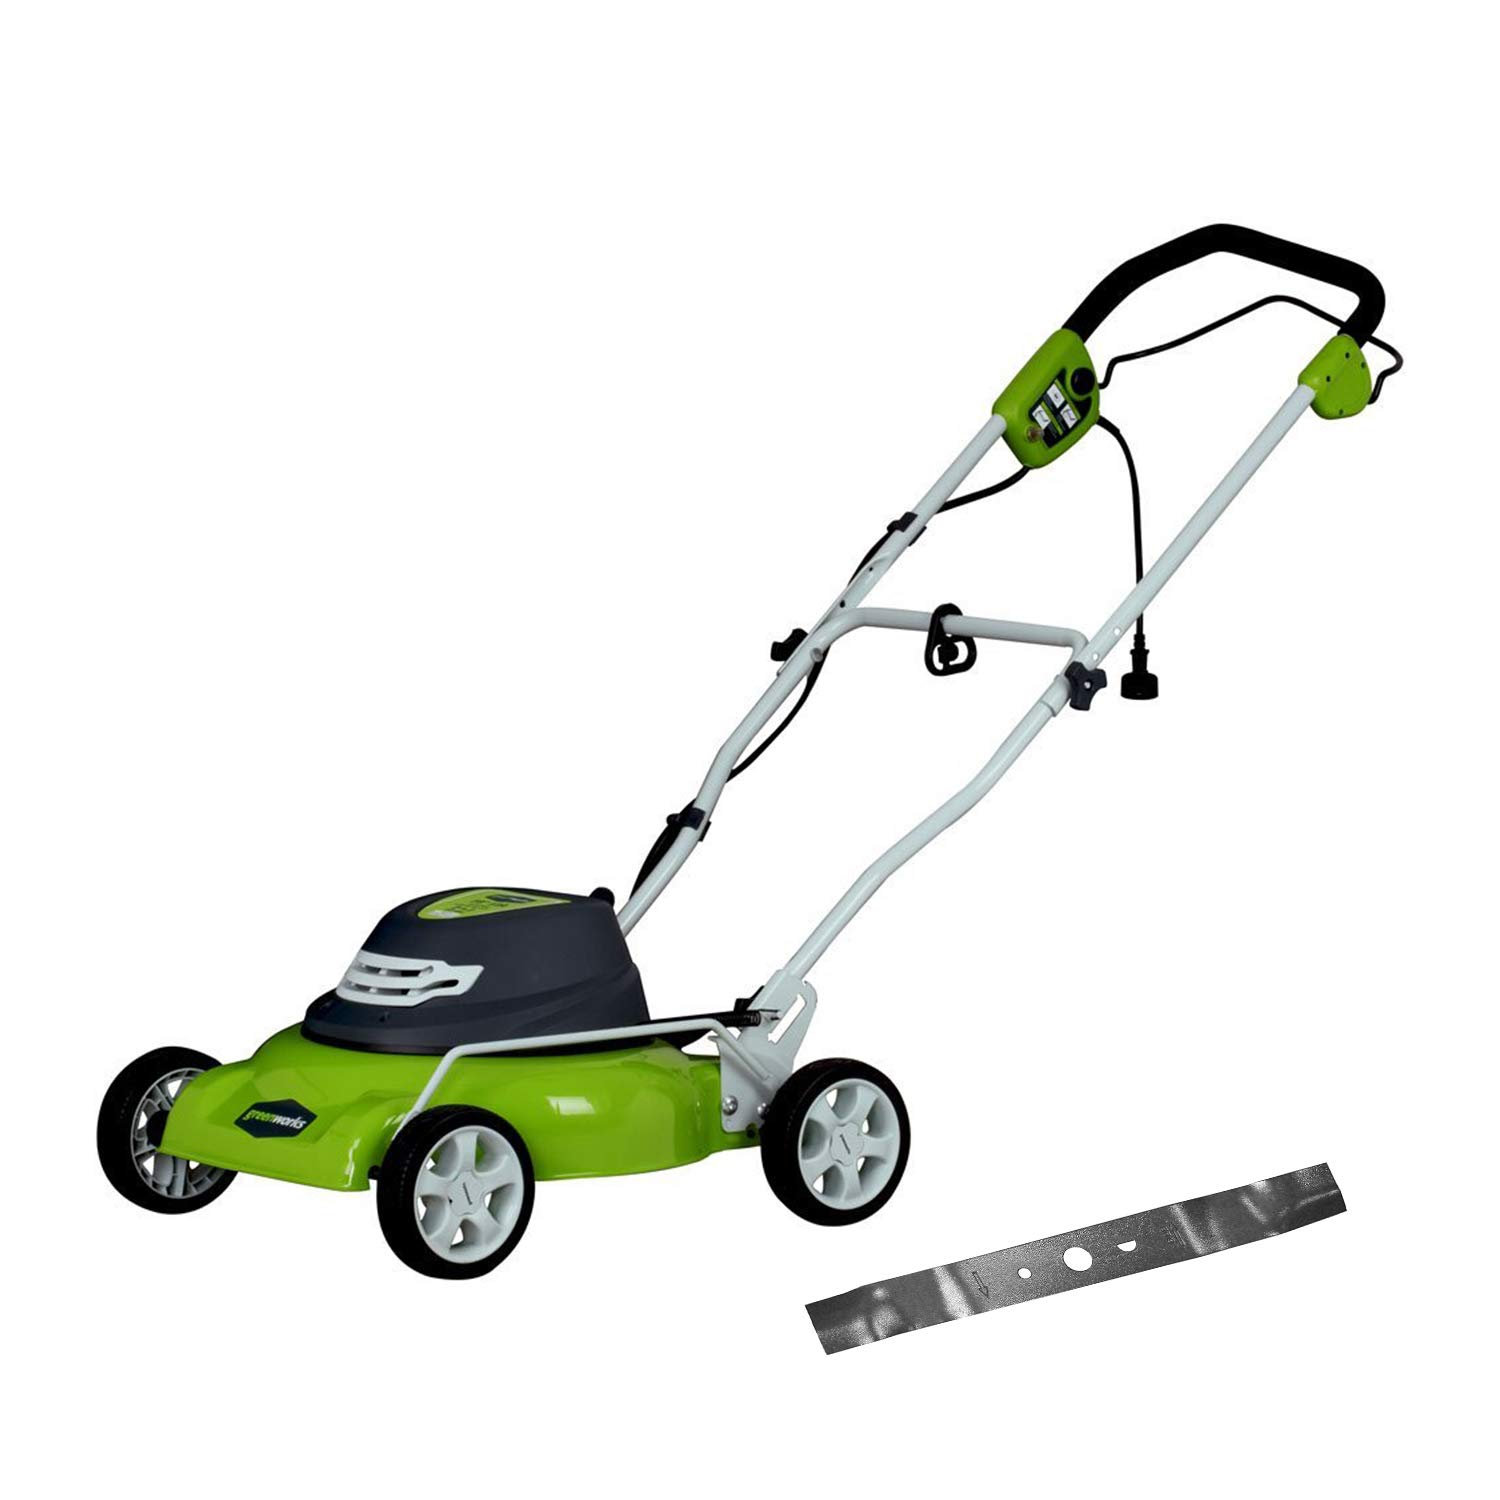 Greenworks 18-Inch 12 Amp Corded Electric Lawn Mower with Extra Blade 25012 by Greenworks